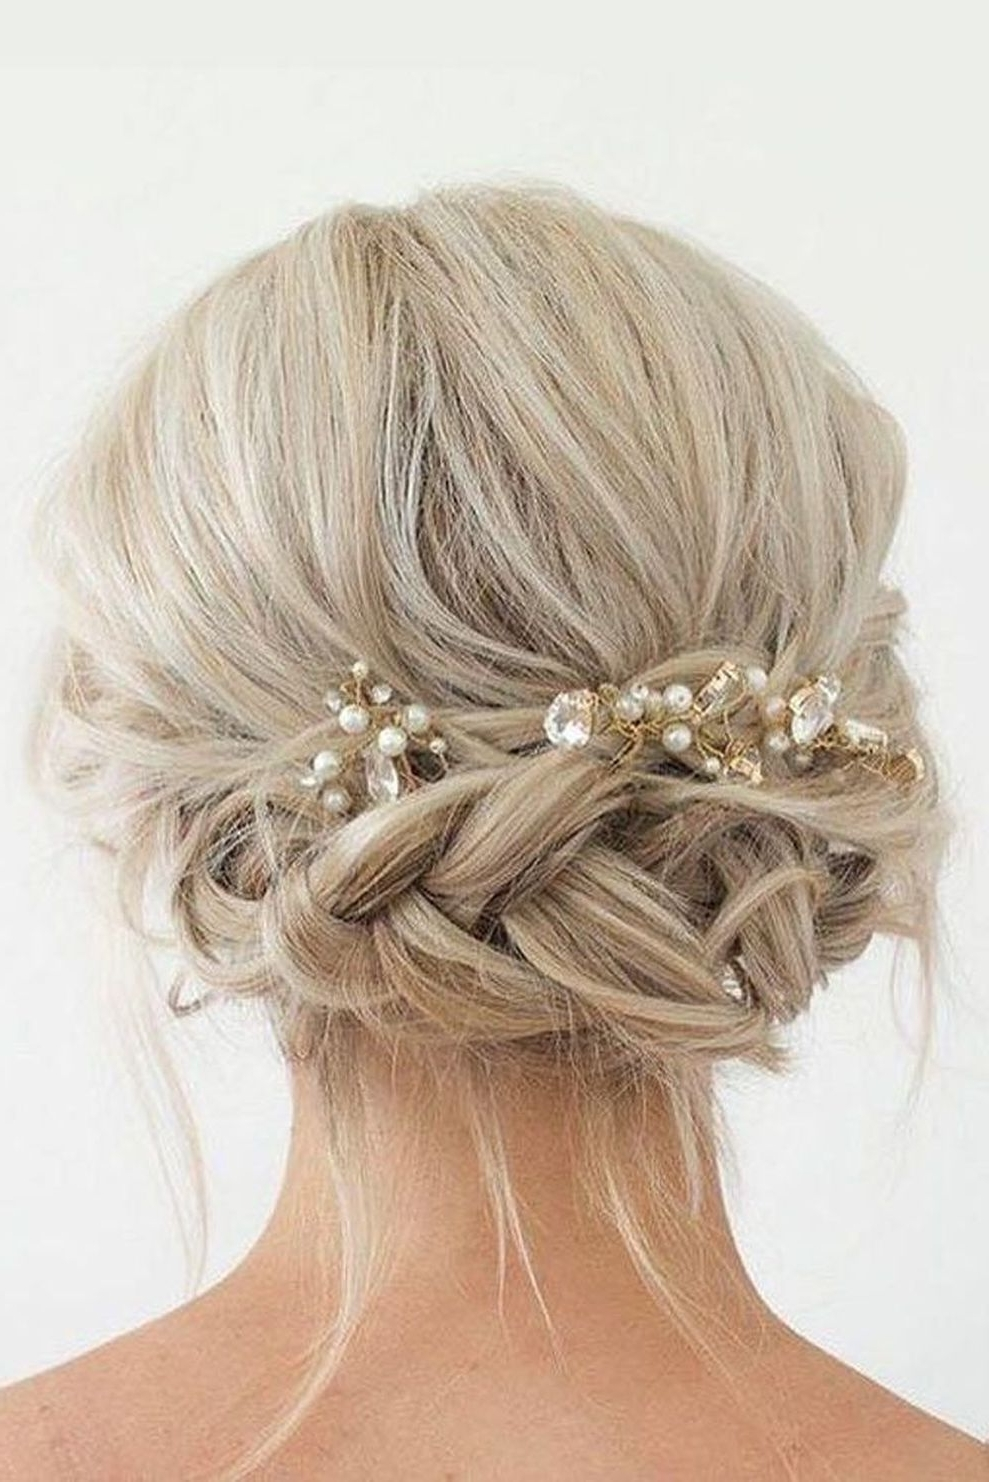 Latest Wedding Hairstyles For Short Medium Length Hair Throughout 44 Beautiful Wedding Hairstyles Ideas For Medium Length Hair (View 11 of 15)